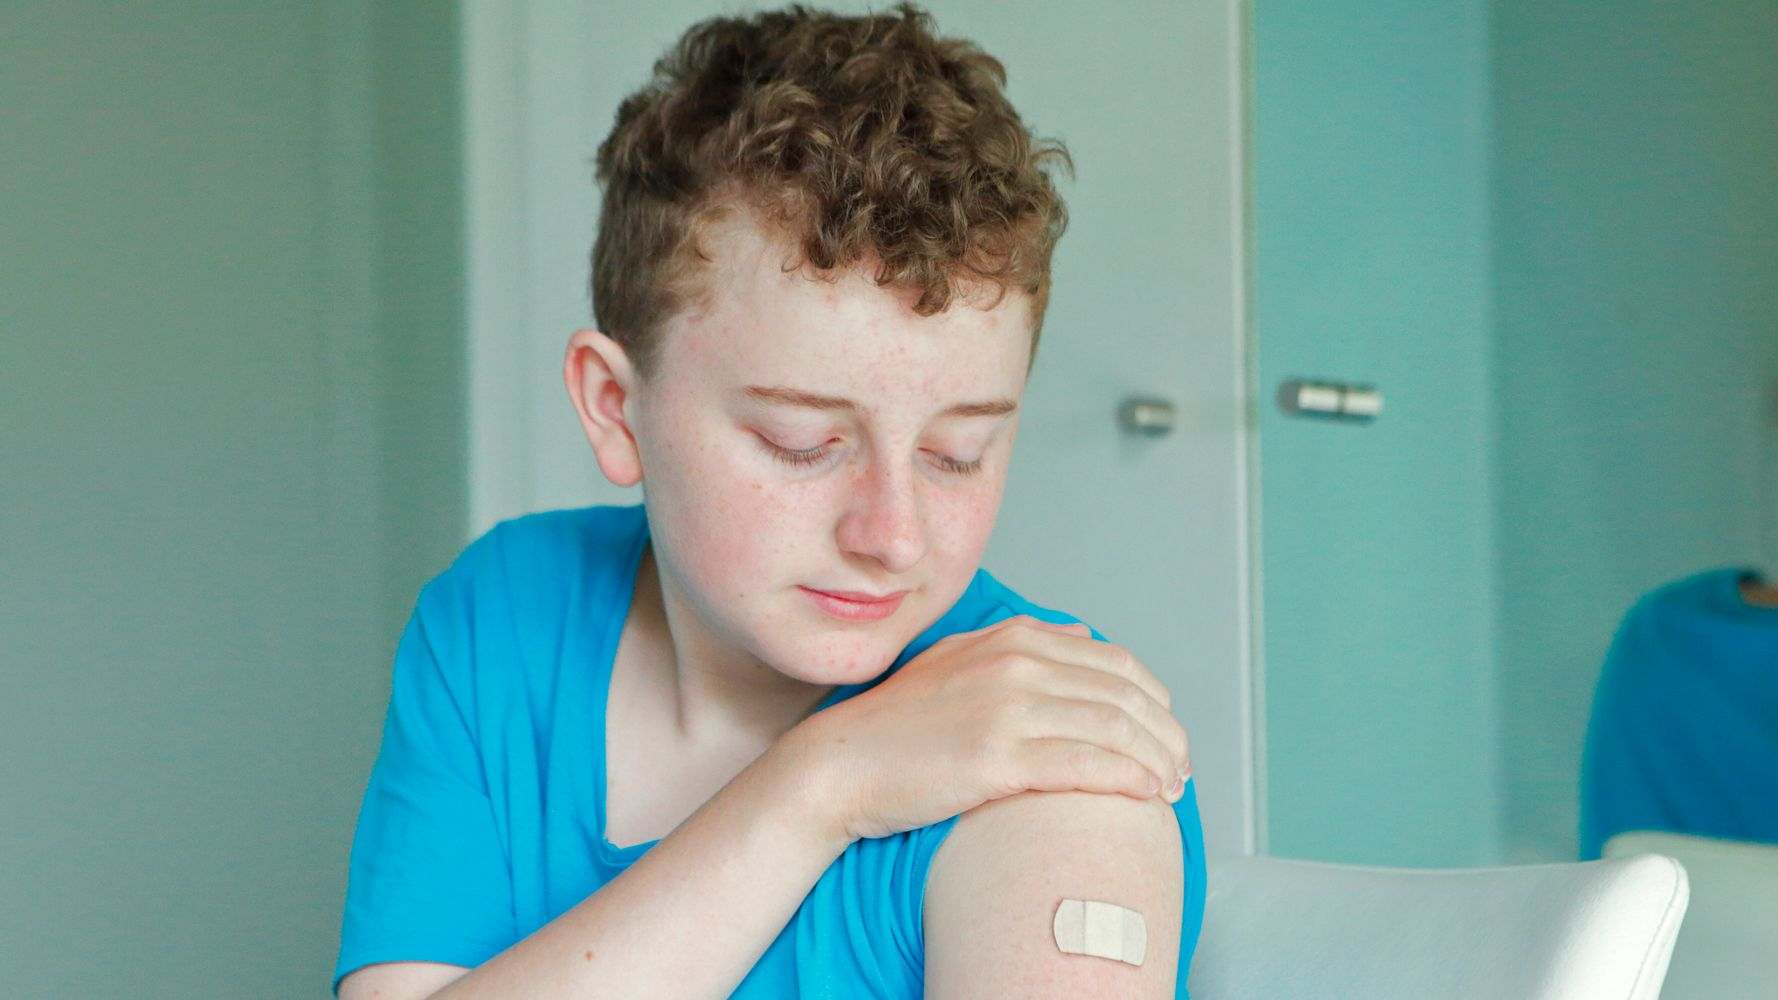 Kids Can Soon Get The Vaccine, But What If Their Parents Say No?